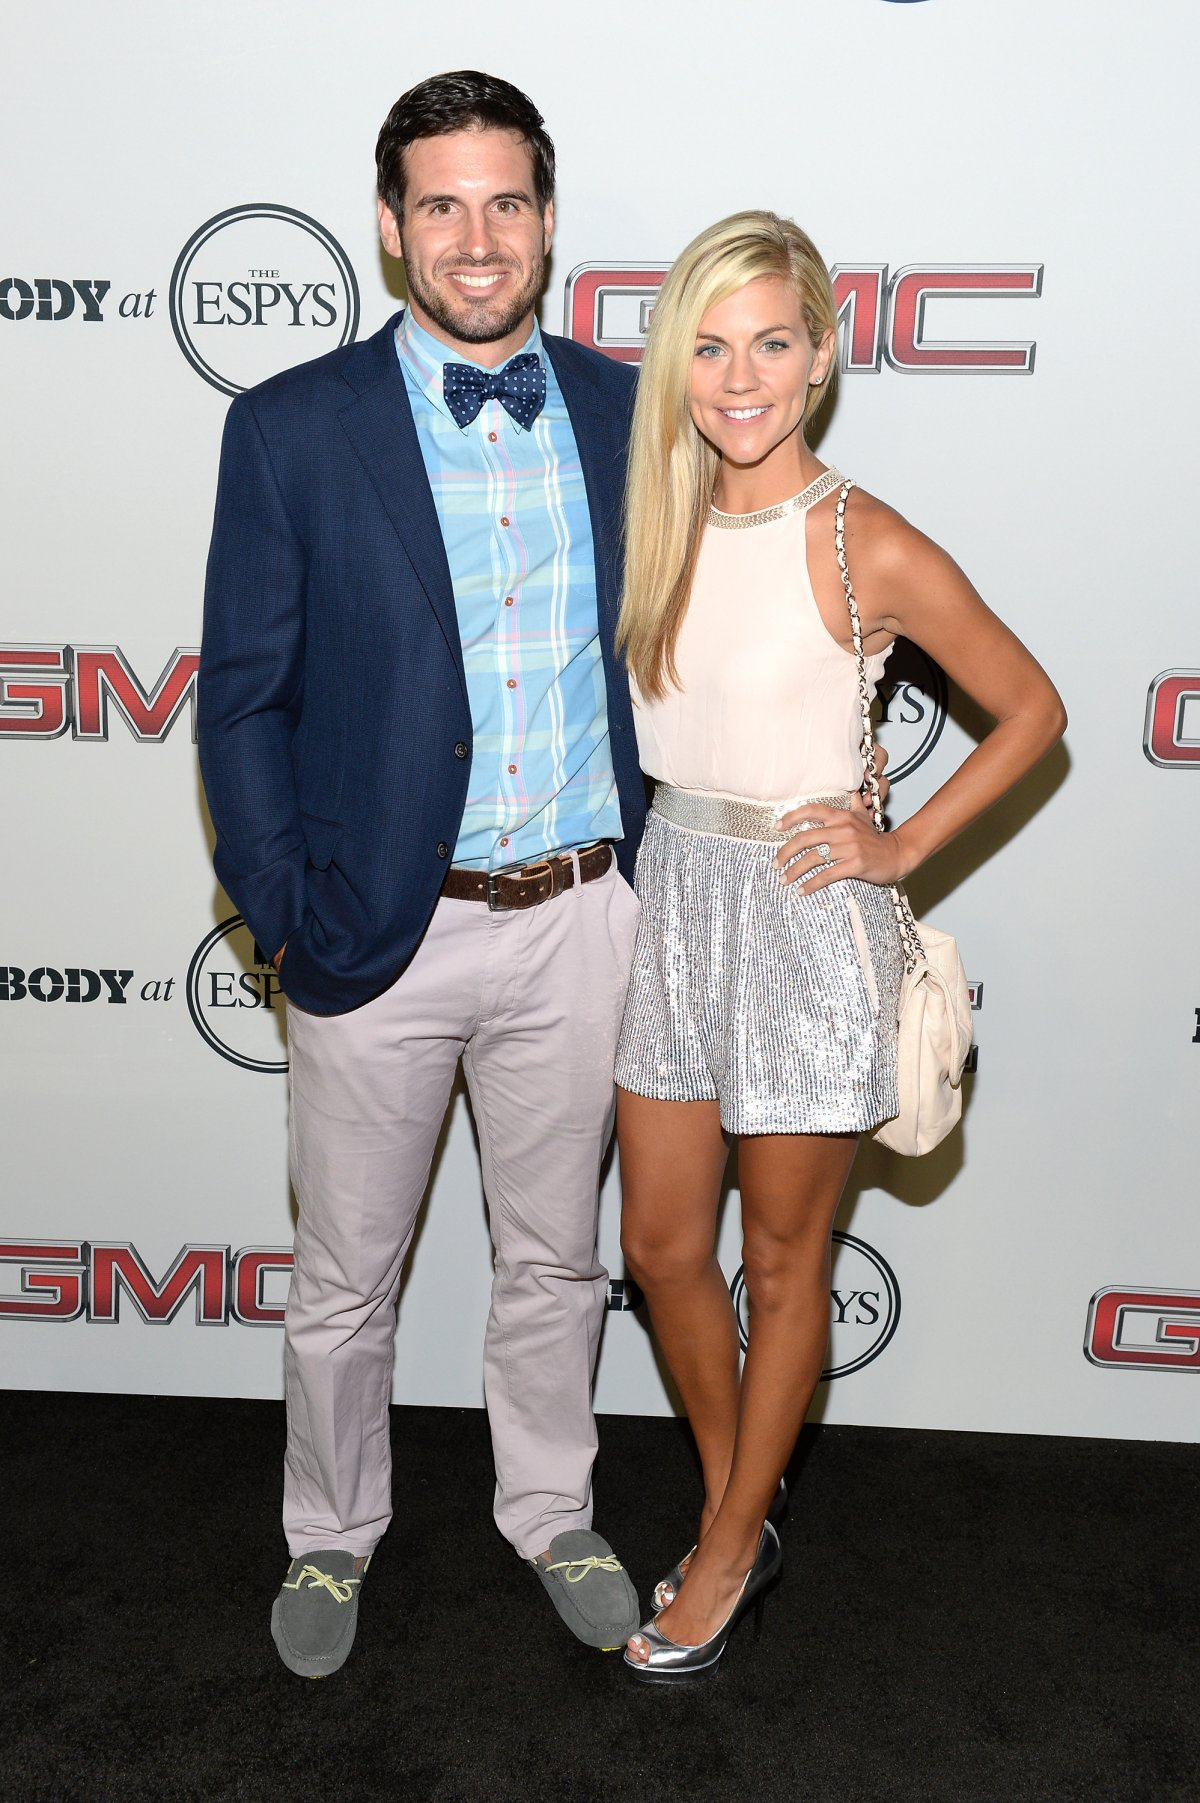 christian-ponders-bowtie-ESPN-2013-Body-Issue-Party